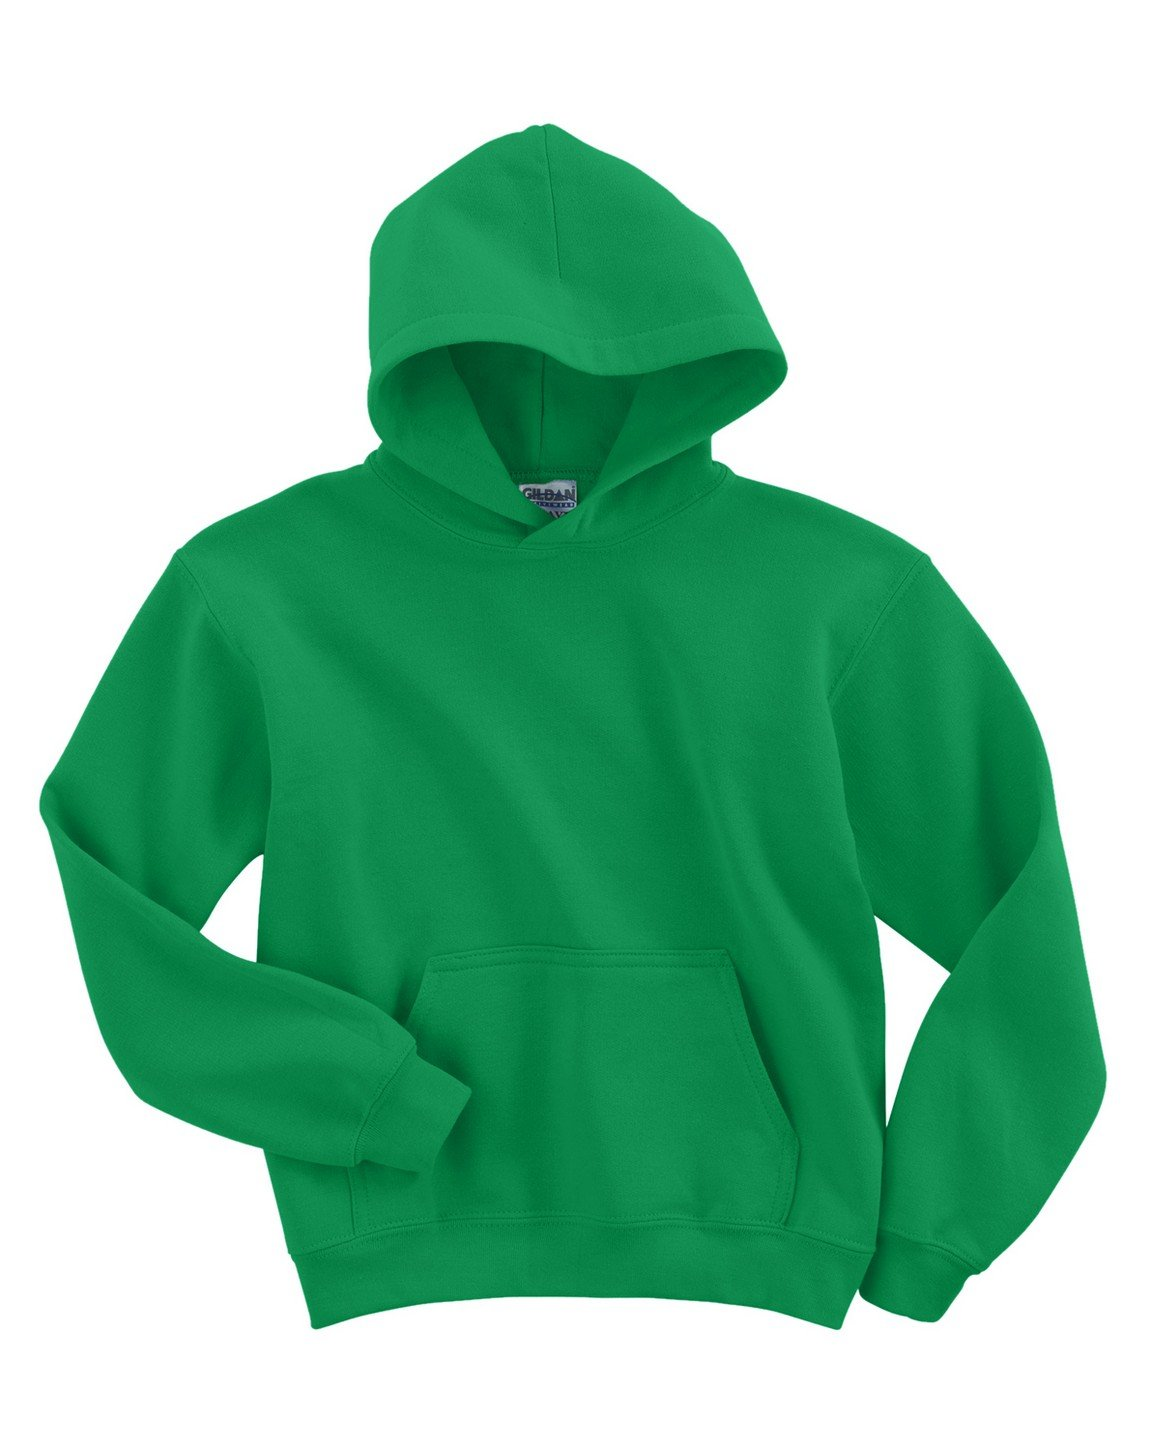 Gildan boys Heavy Blend Hooded Sweatshirt(G185B)-IRISH GREEN-M